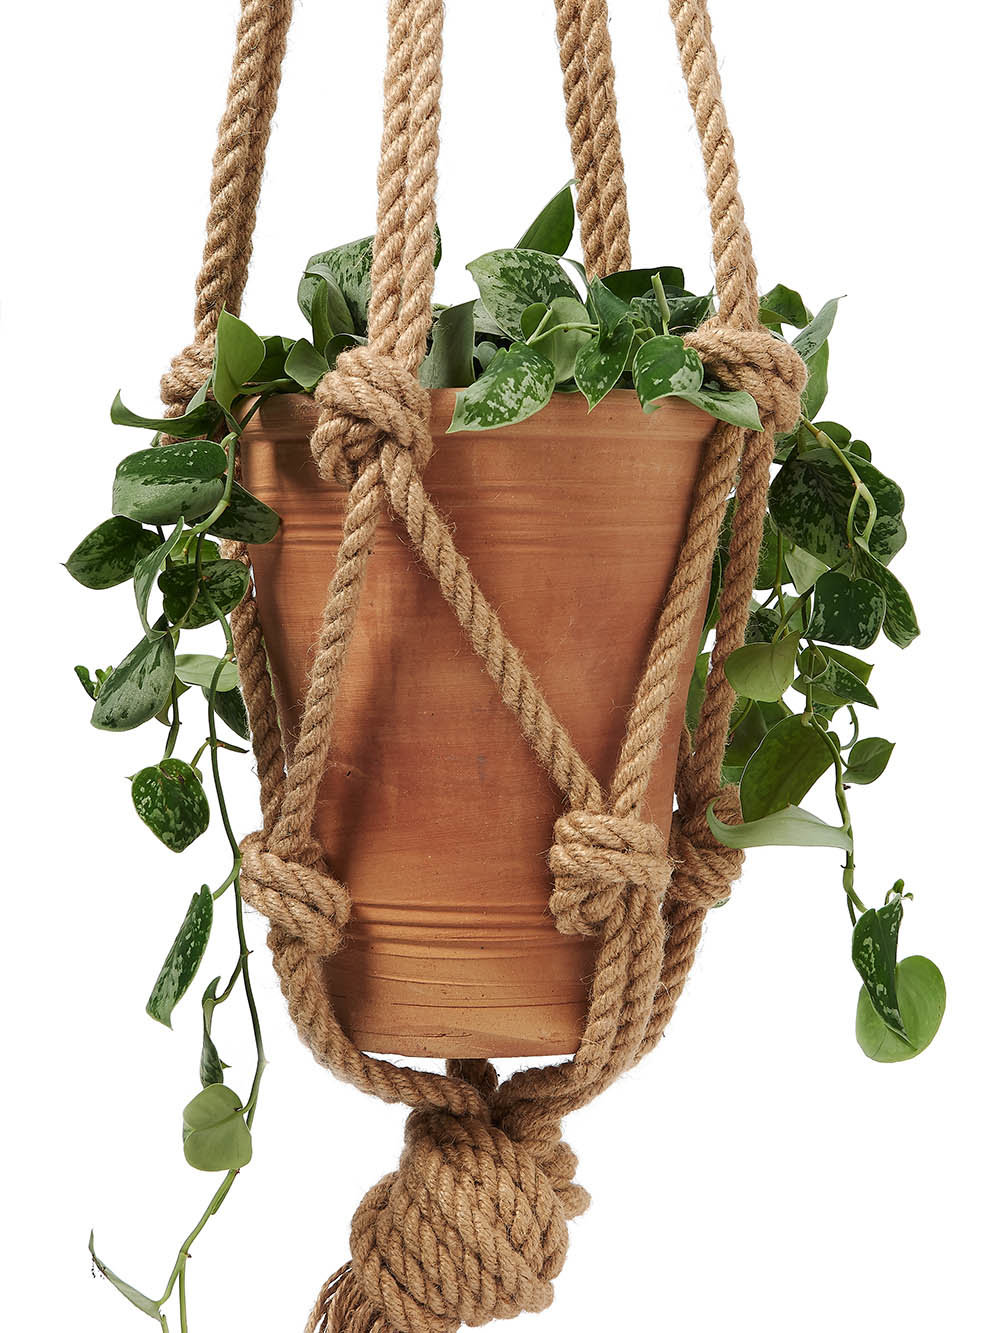 Detail shot of a macrame hanger with plant & pot